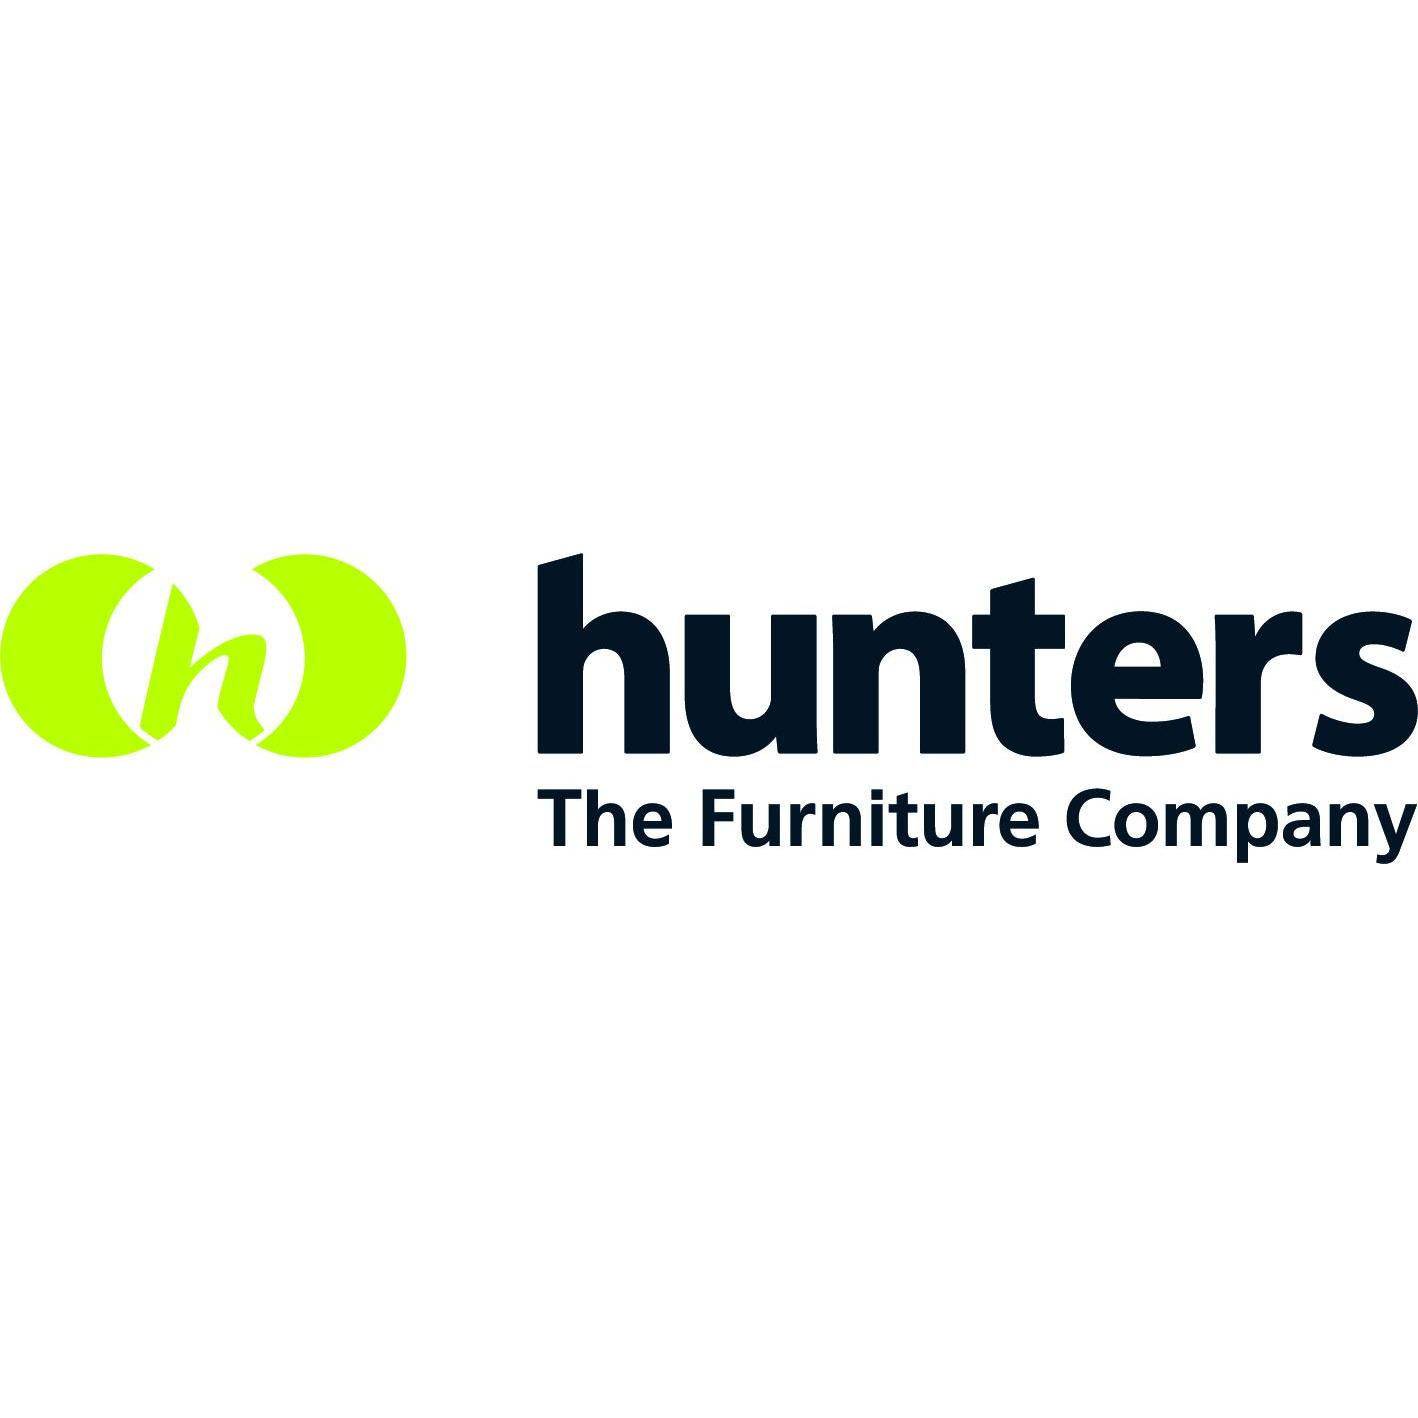 Hunters Contracts North Ltd - Chester, Cheshire CH1 1SD - 01244 405252 | ShowMeLocal.com